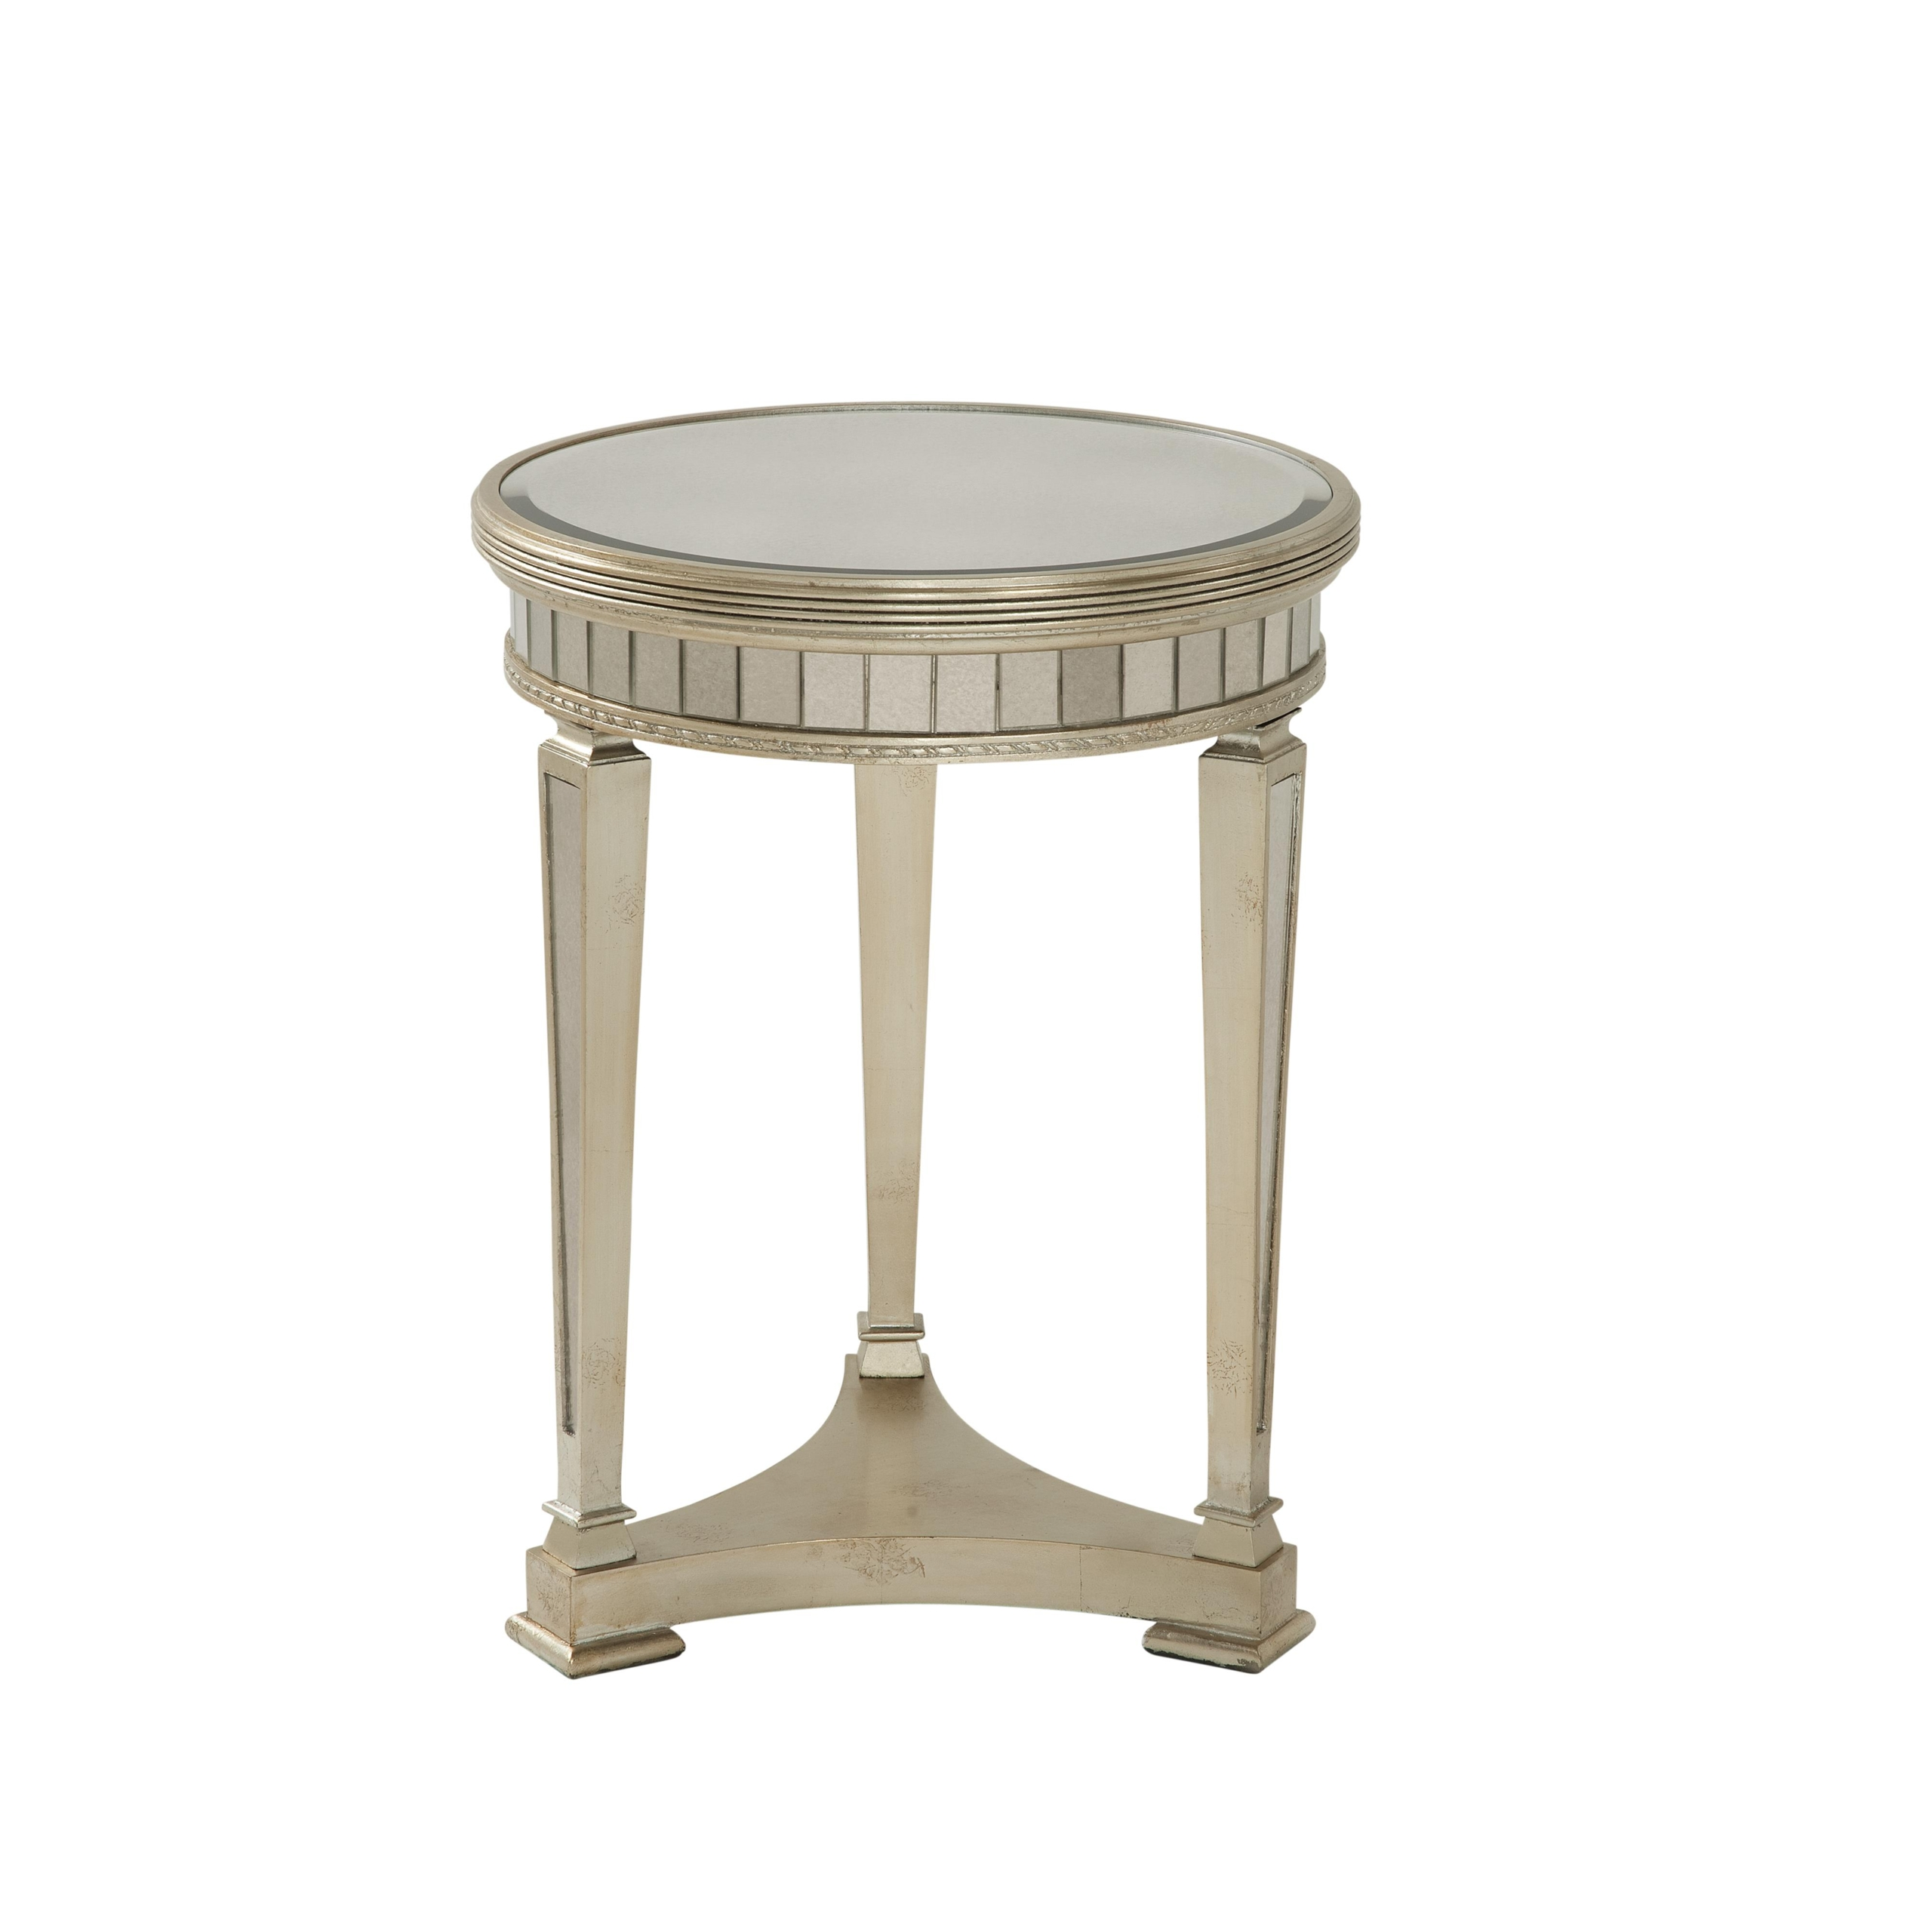 Mirrored Round End Table 2